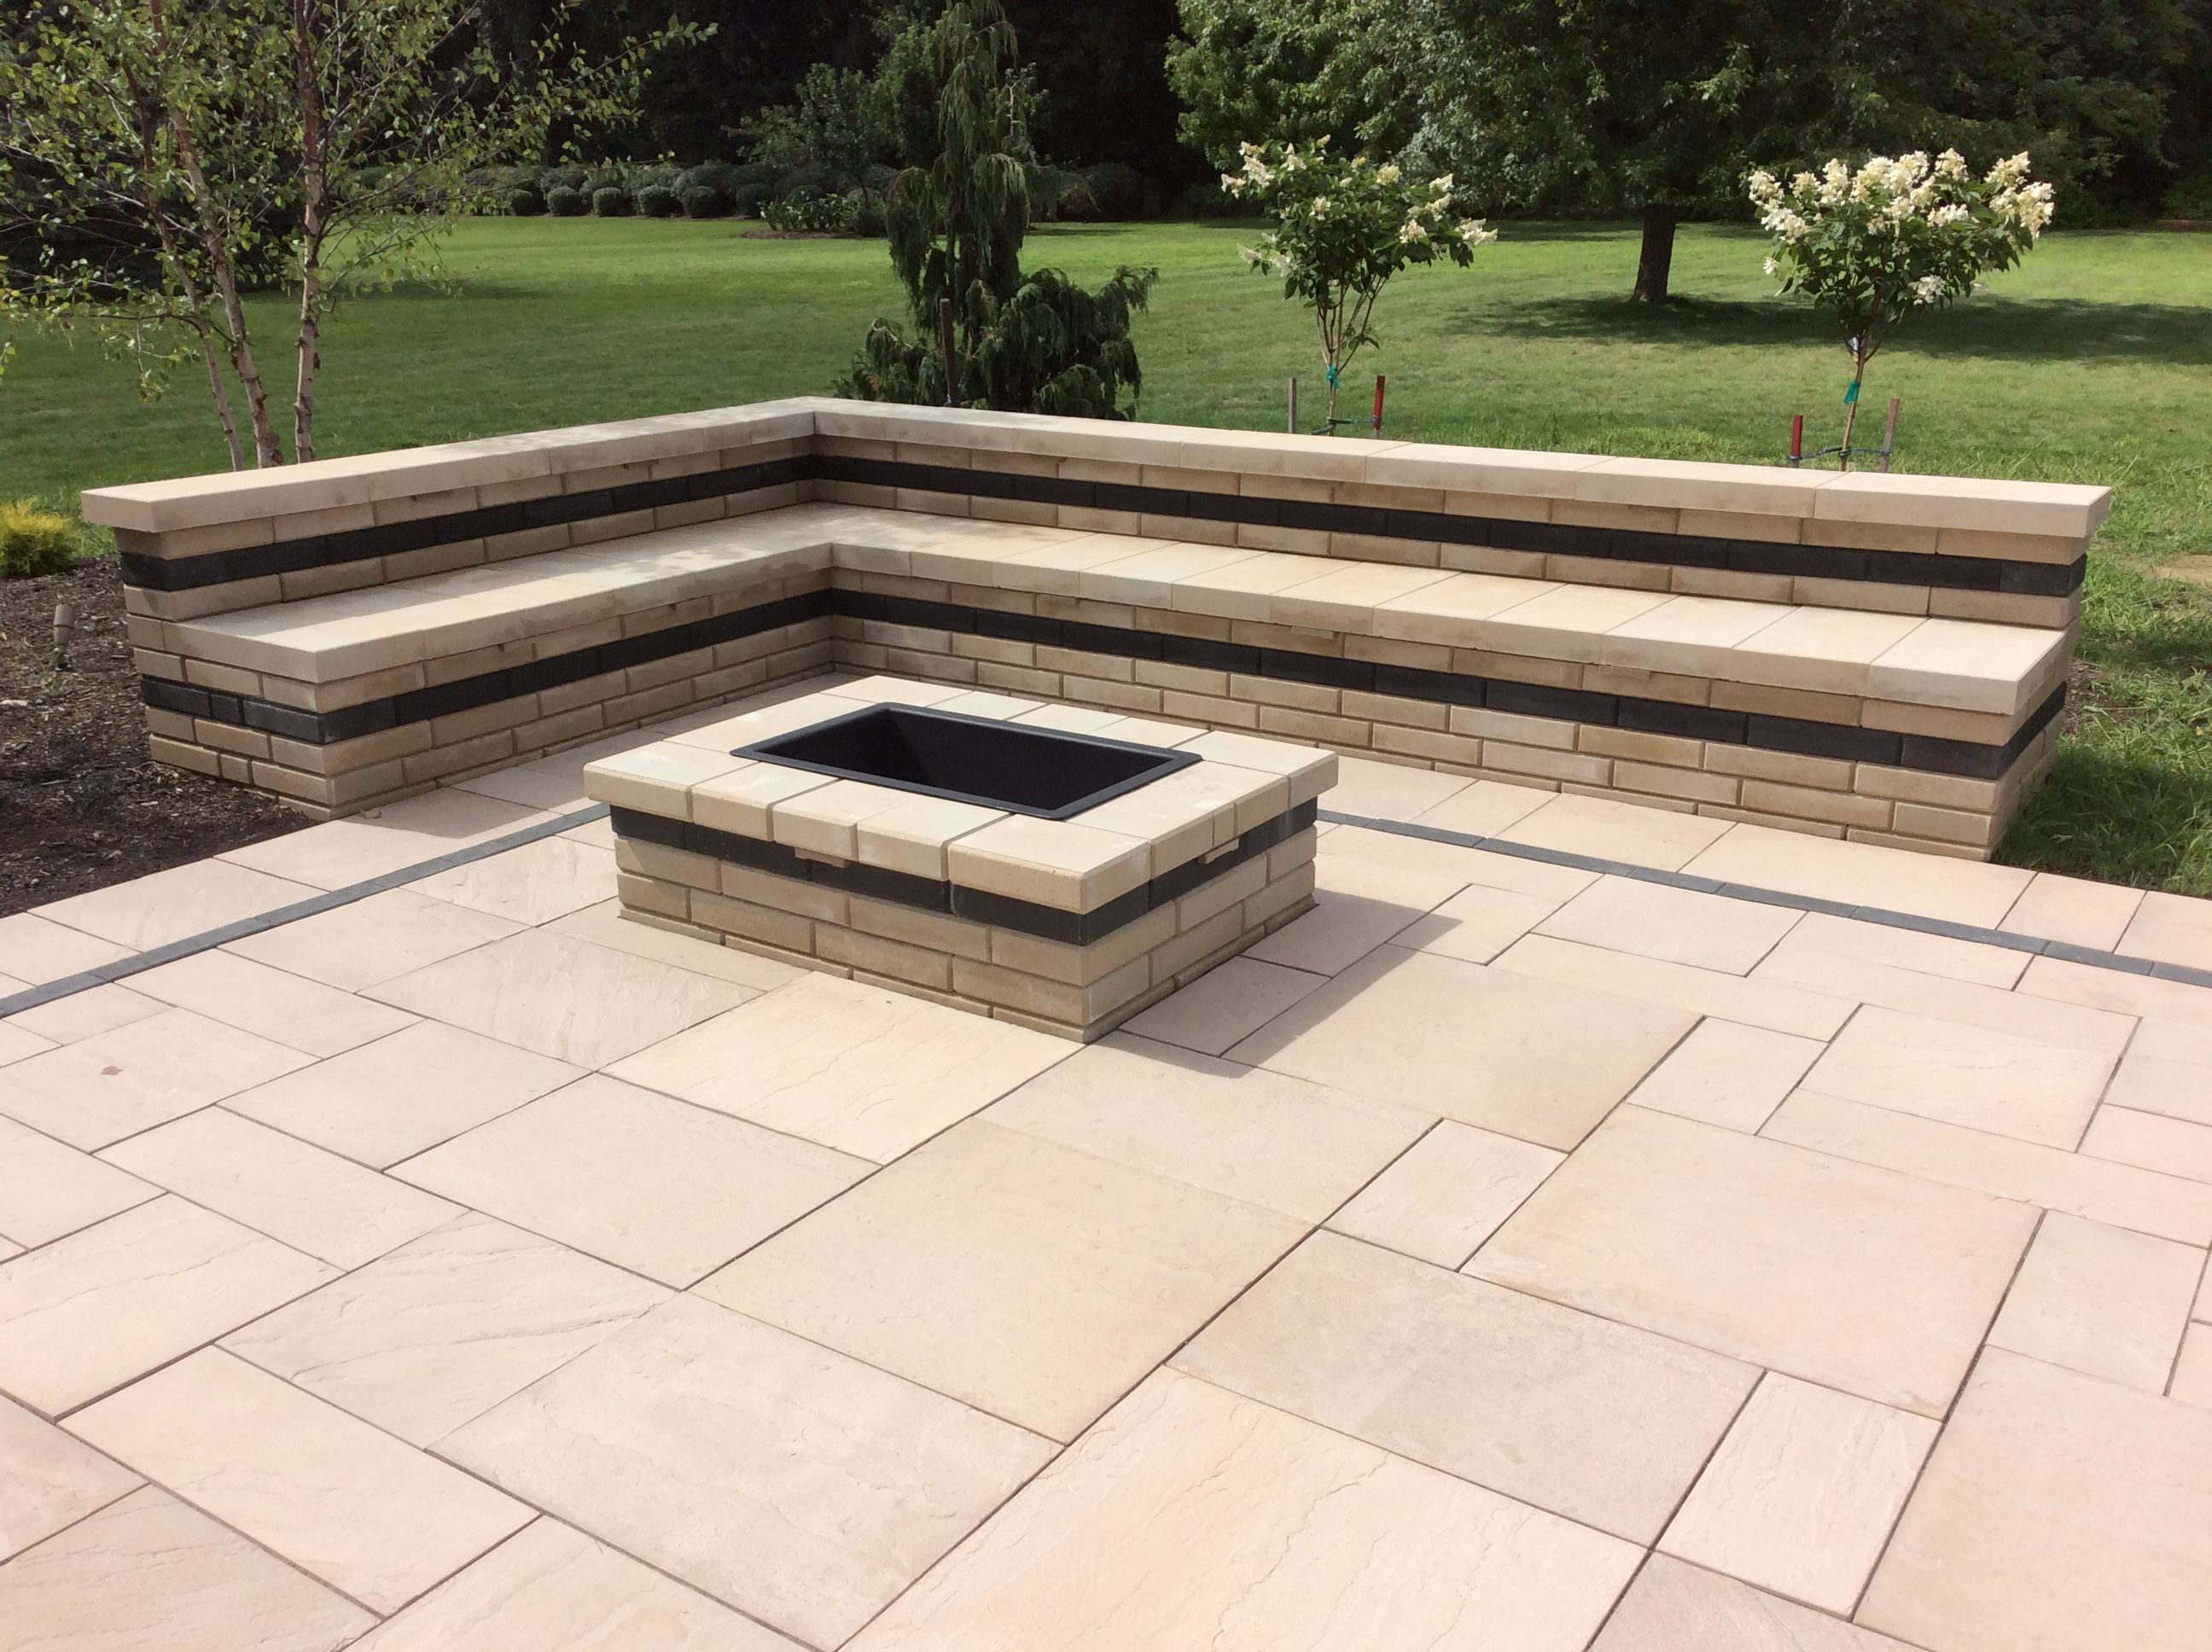 1 100sf two tiered paver patio with 10ft long bar drop in cooler